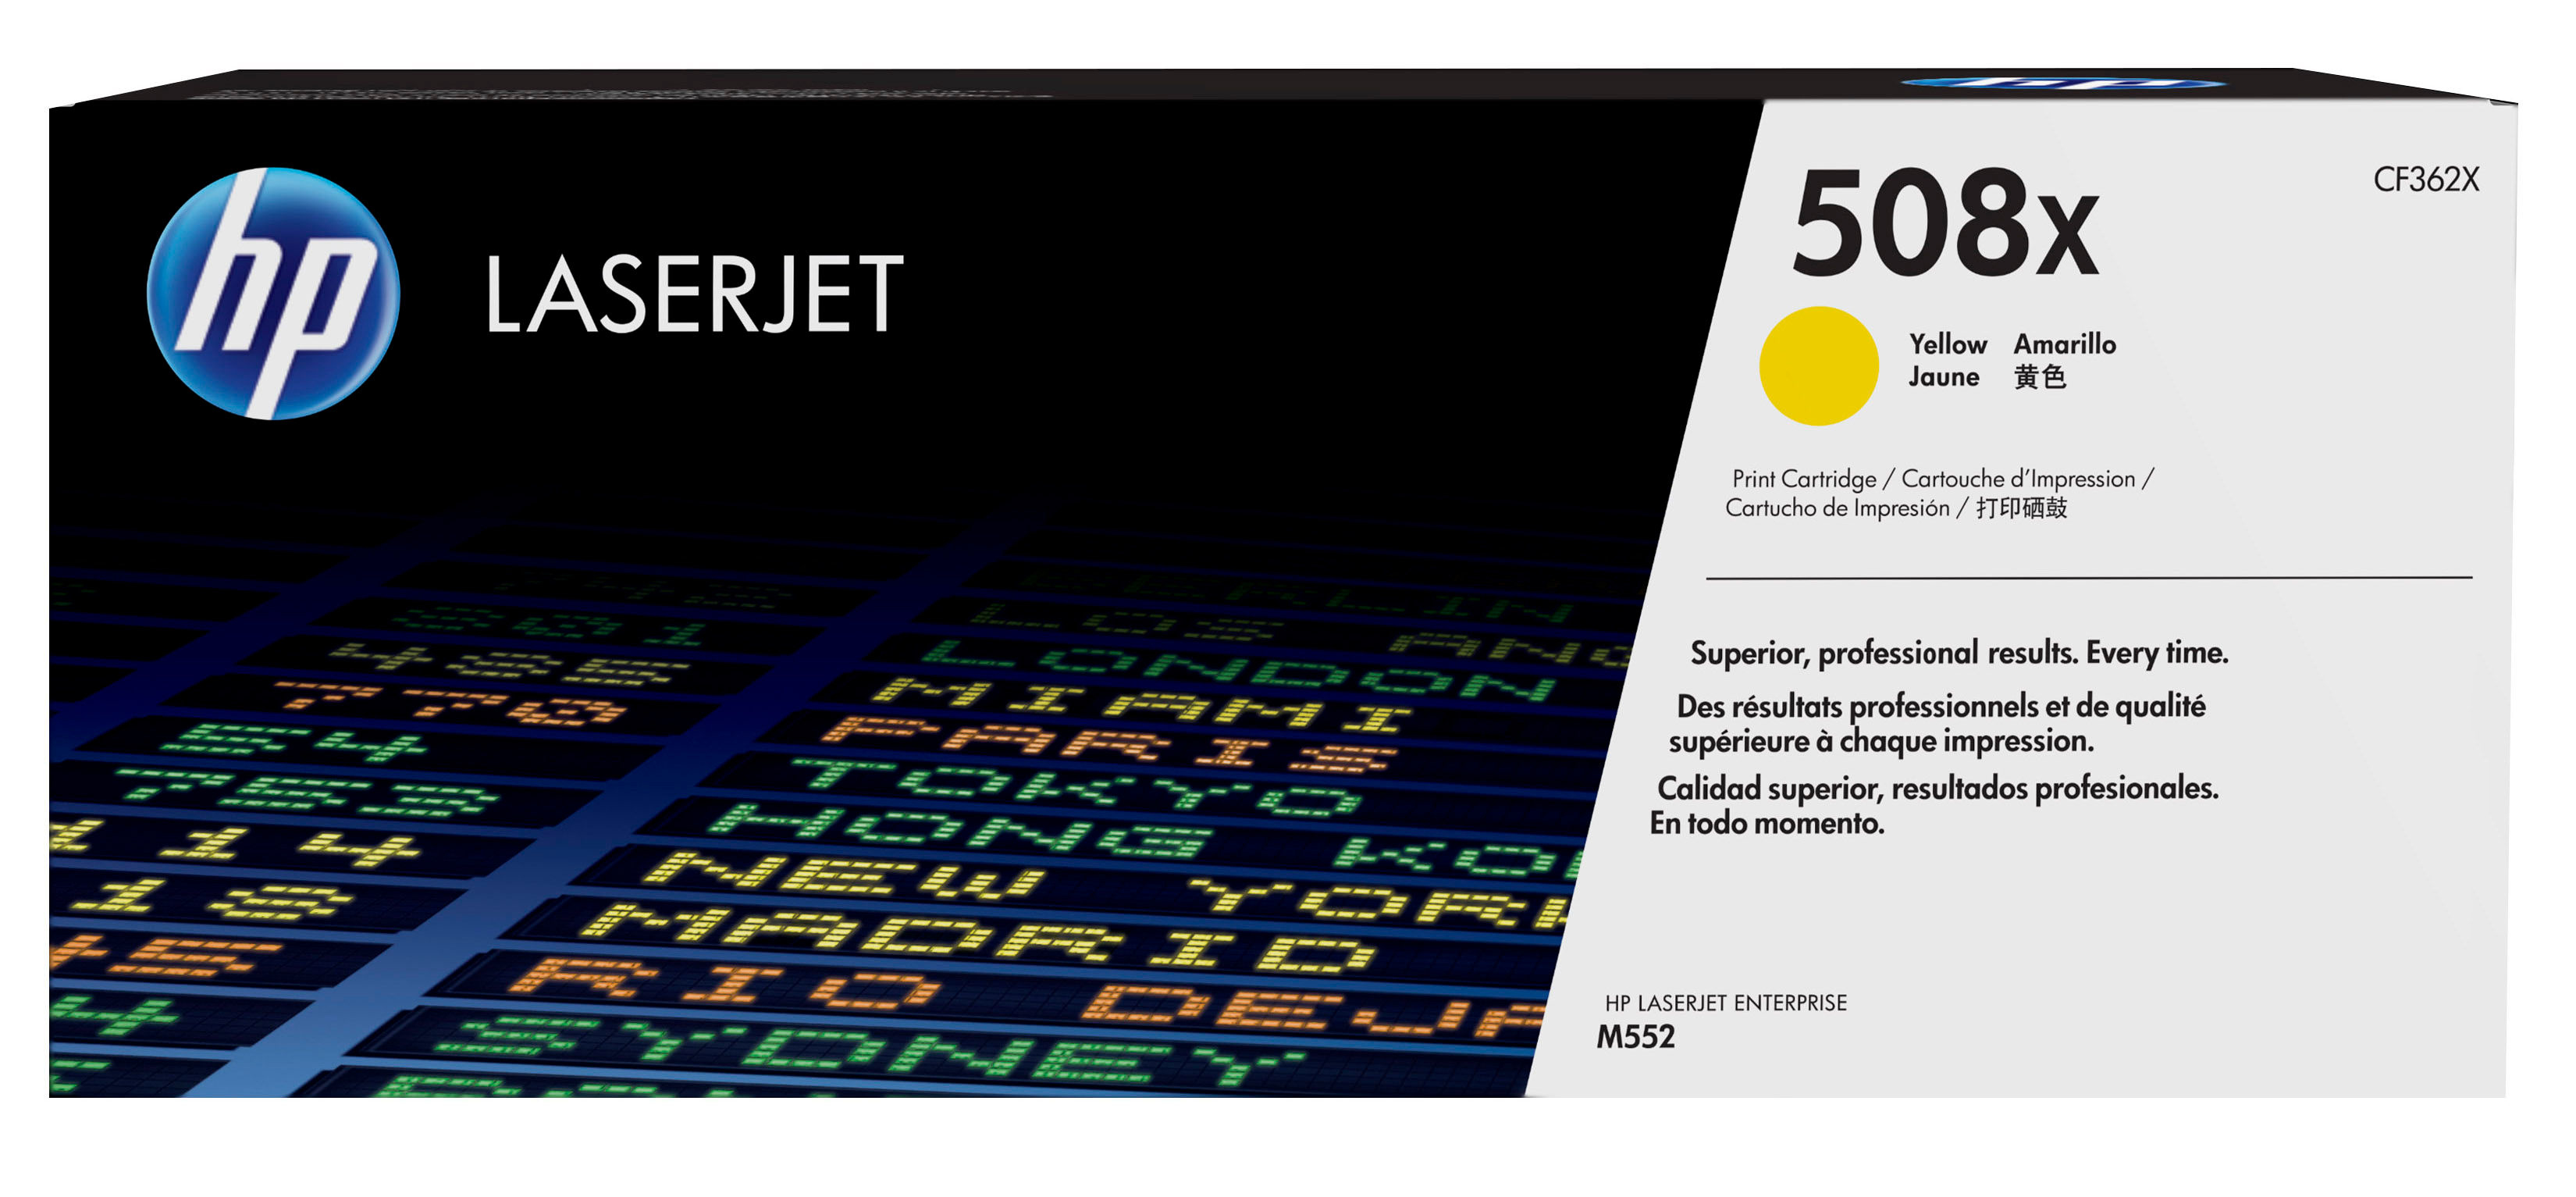 HP 508X - CF362X - 1 X Yellow - Toner Cartridge - High Yield - For Color LaserJet Enterprise M552dn, M553dn, M553n, M553x CF362X - C2000